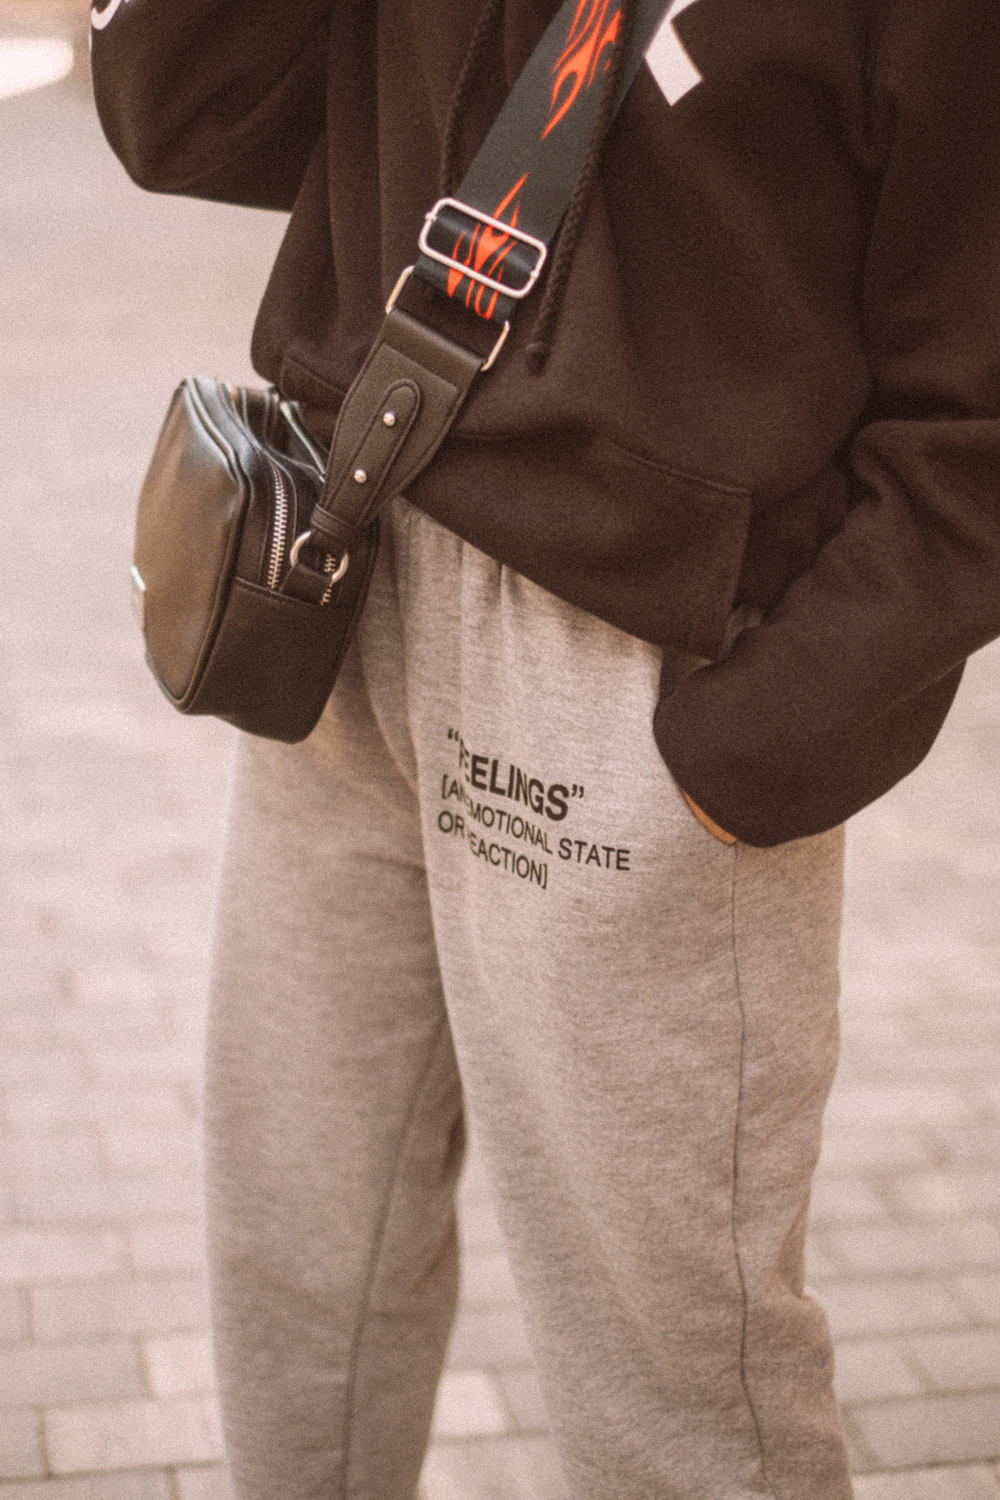 JustFashionNow casual sweatpants in grey